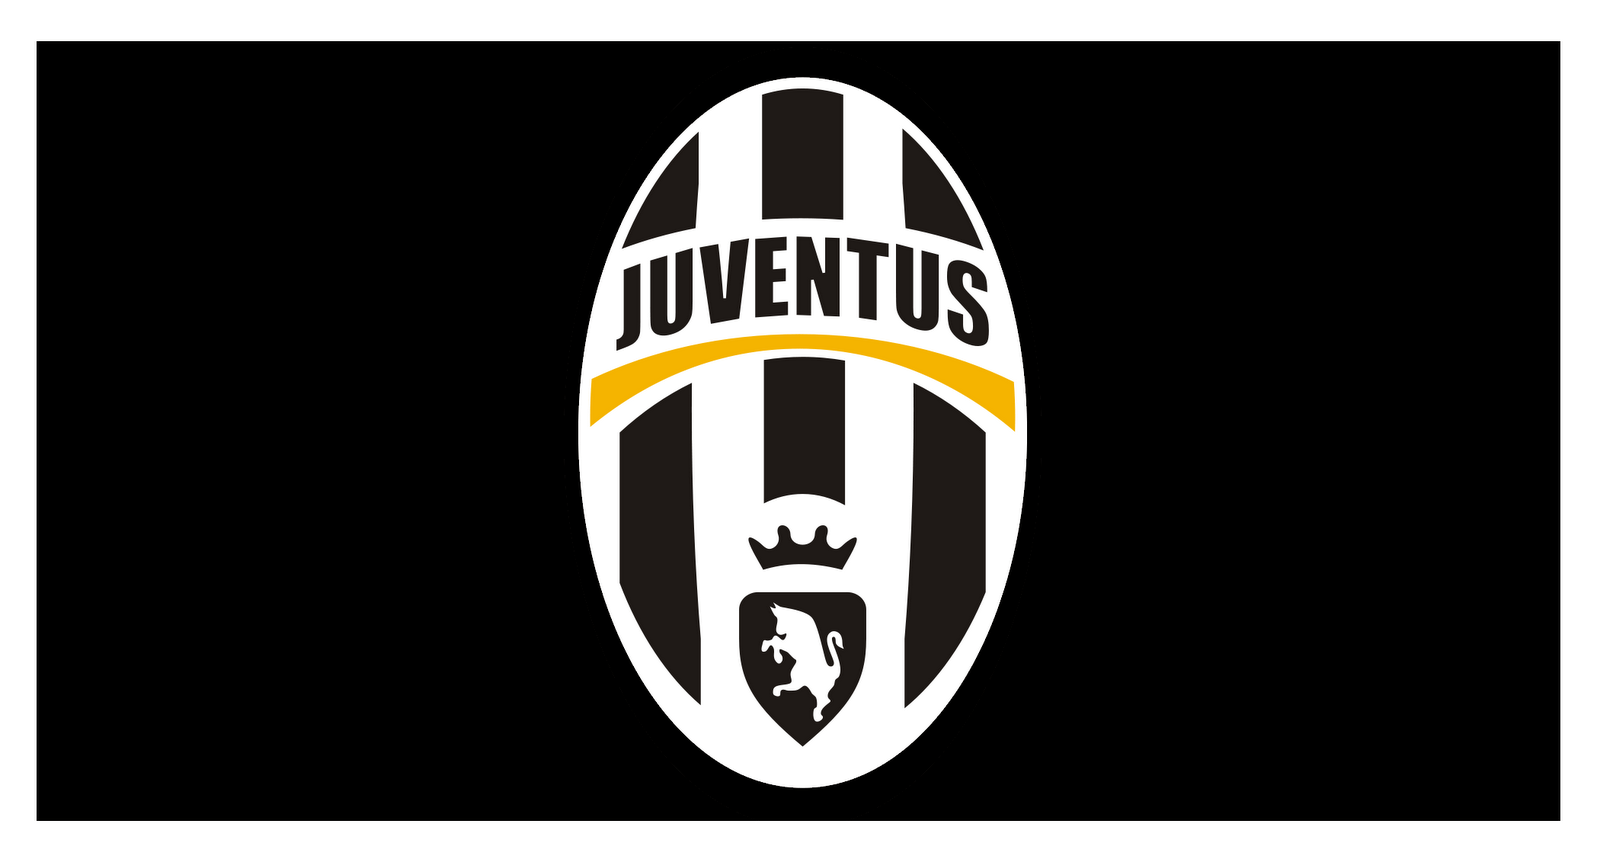 Juventus Black Background Hohomiche